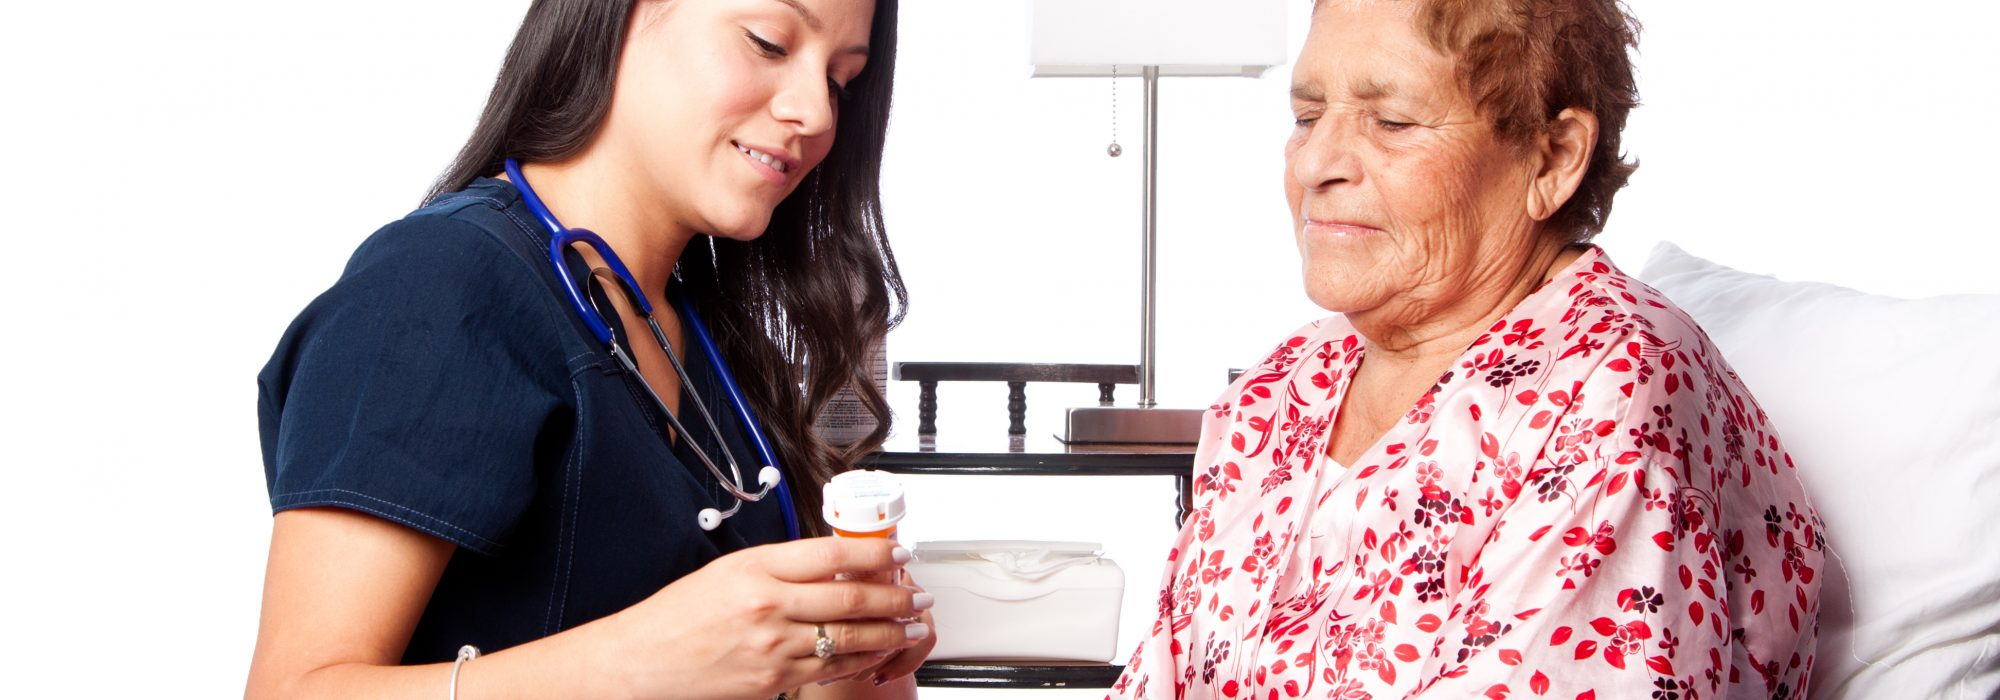 Nurse explaining prescription medication to senior patient, home medical health concept.